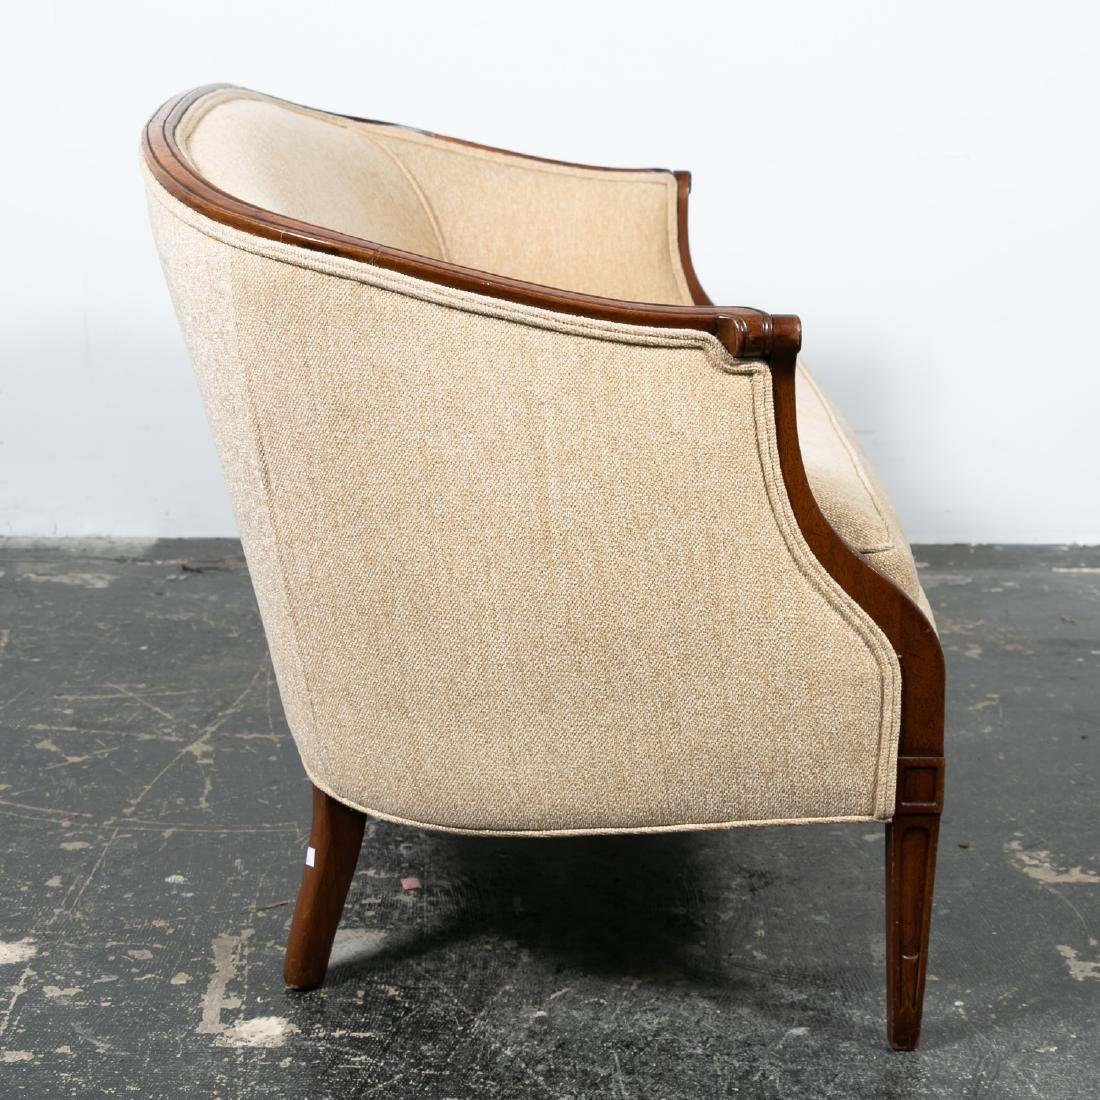 Hepplewhite Style Upholstered Settee, 20th Cent. - 5